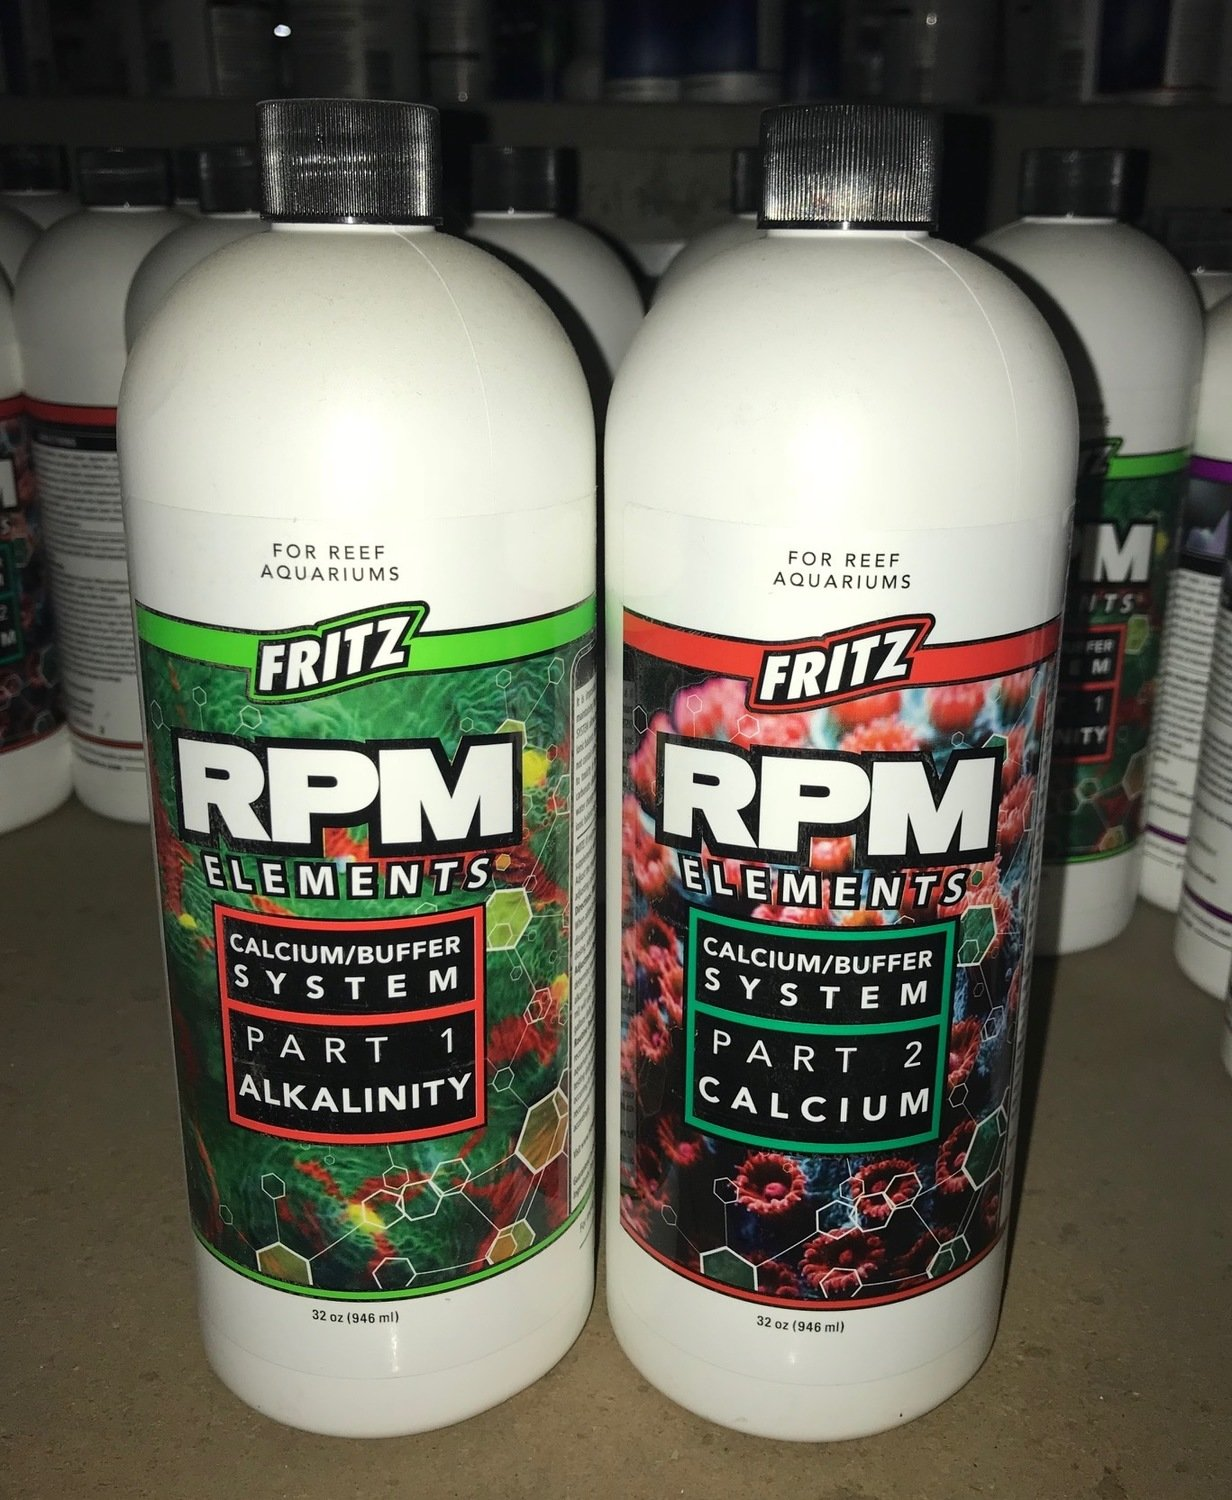 Fritz RPM Elements Calcium/ Buffer System Pt.2- Calcium